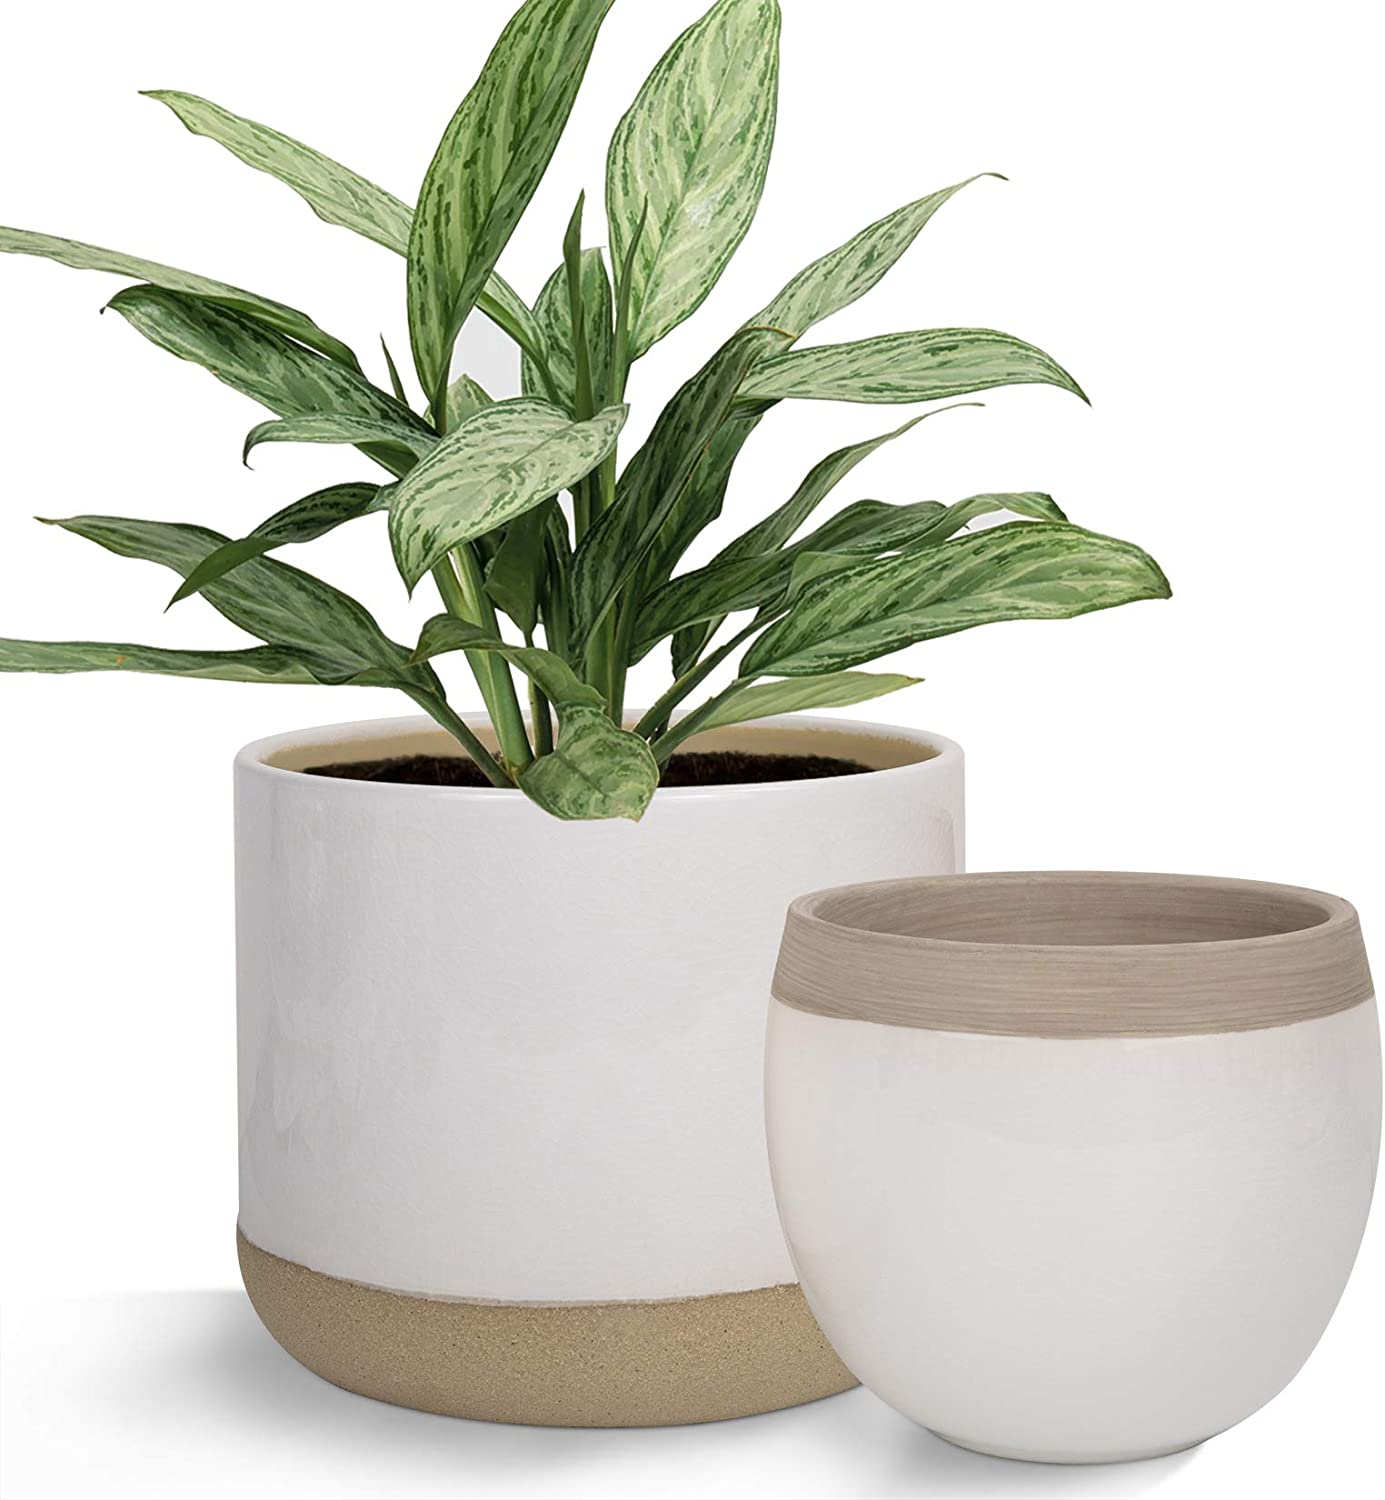 Amazon Com White Ceramic Flower Plant Pots 6 5 4 9 Inch Indoor Planters Plant Containers With Beige And Cracked Detailing Garden Outdoor